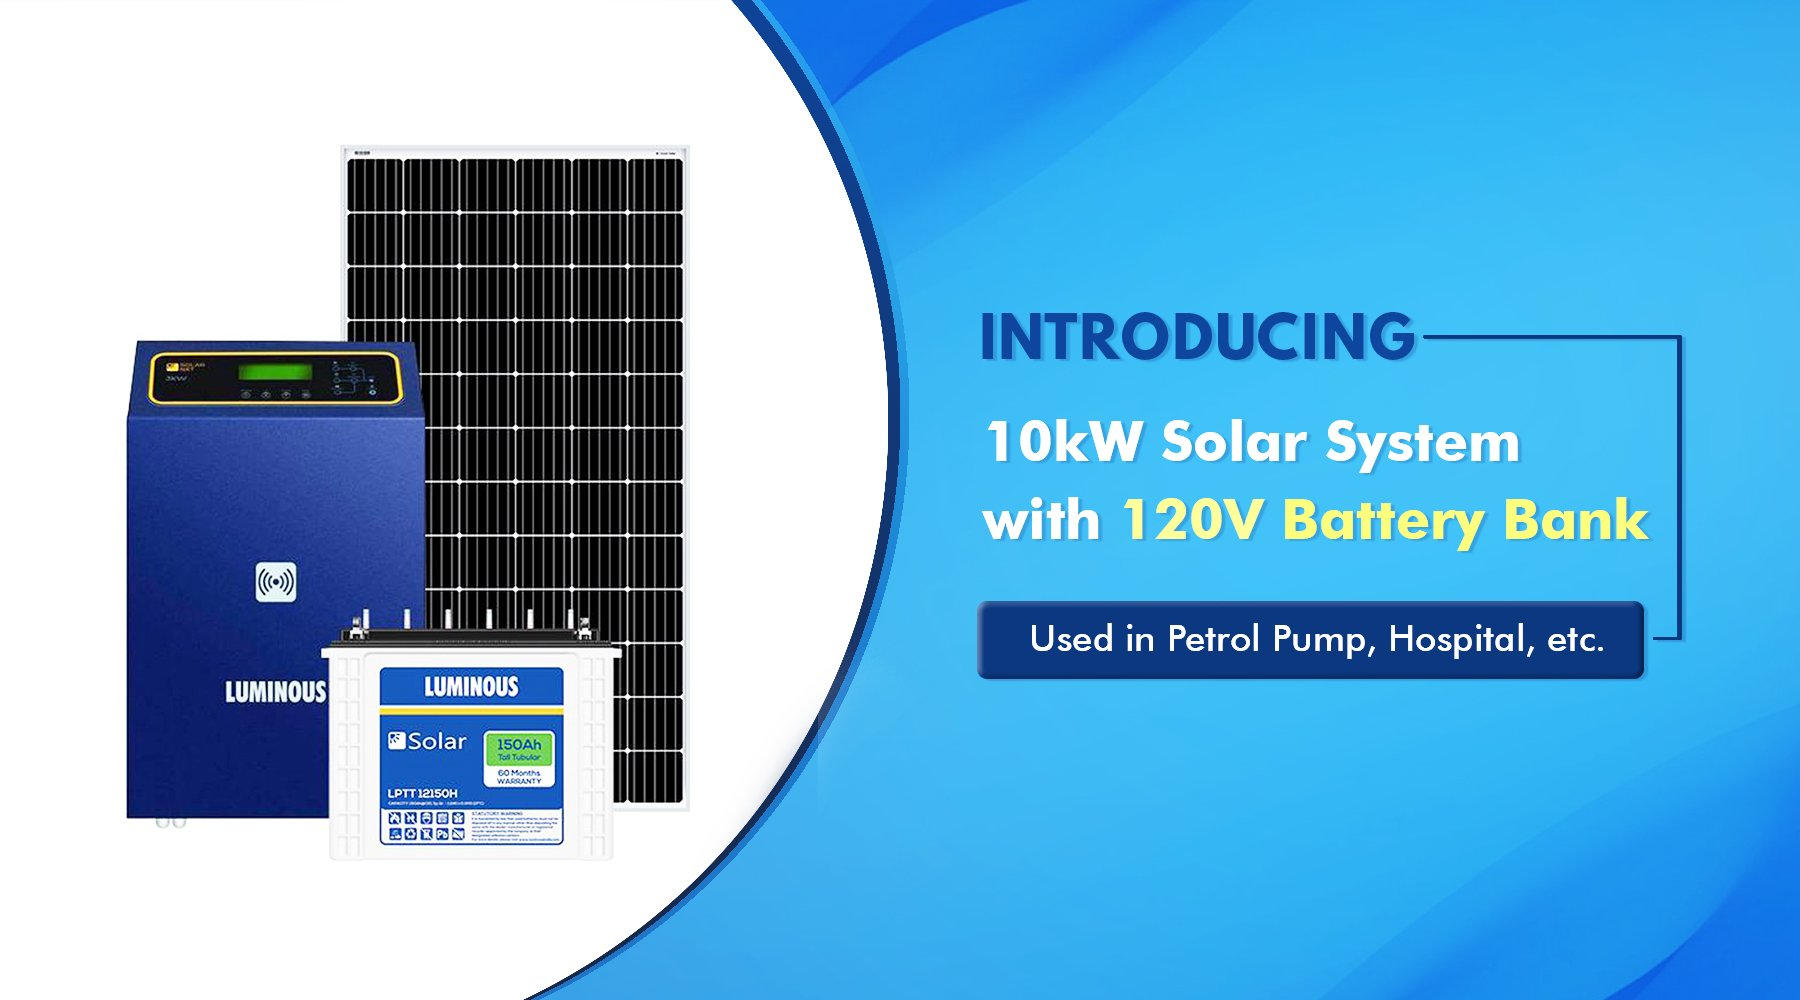 10kW Solar System price in India 2021